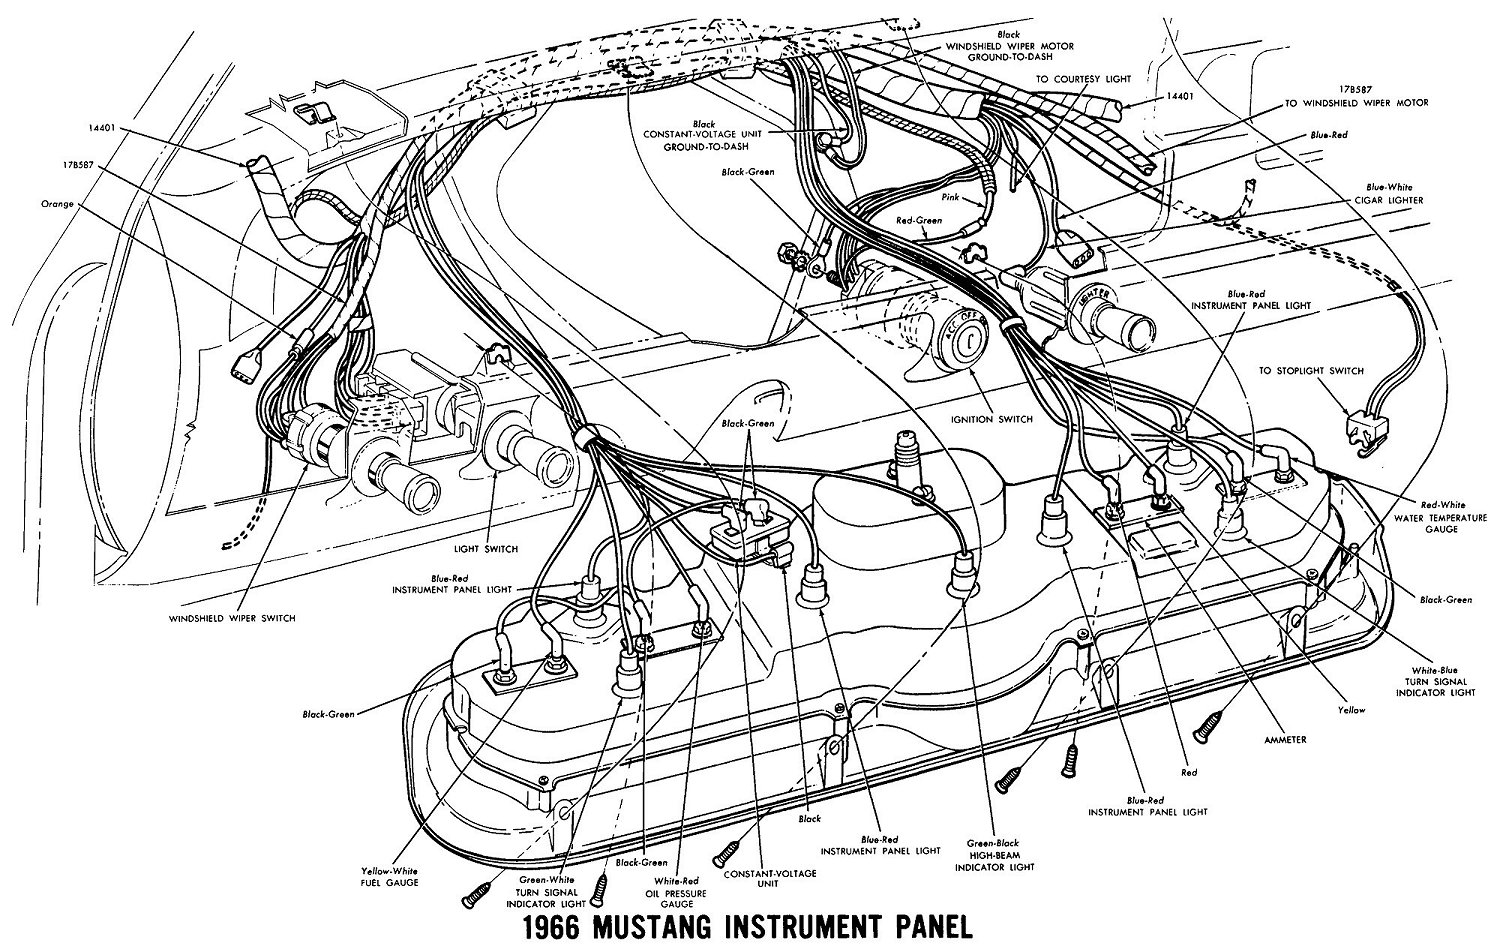 66instr 1966 mustang wiring diagrams average joe restoration 1970 mustang wiring diagram pdf at bakdesigns.co